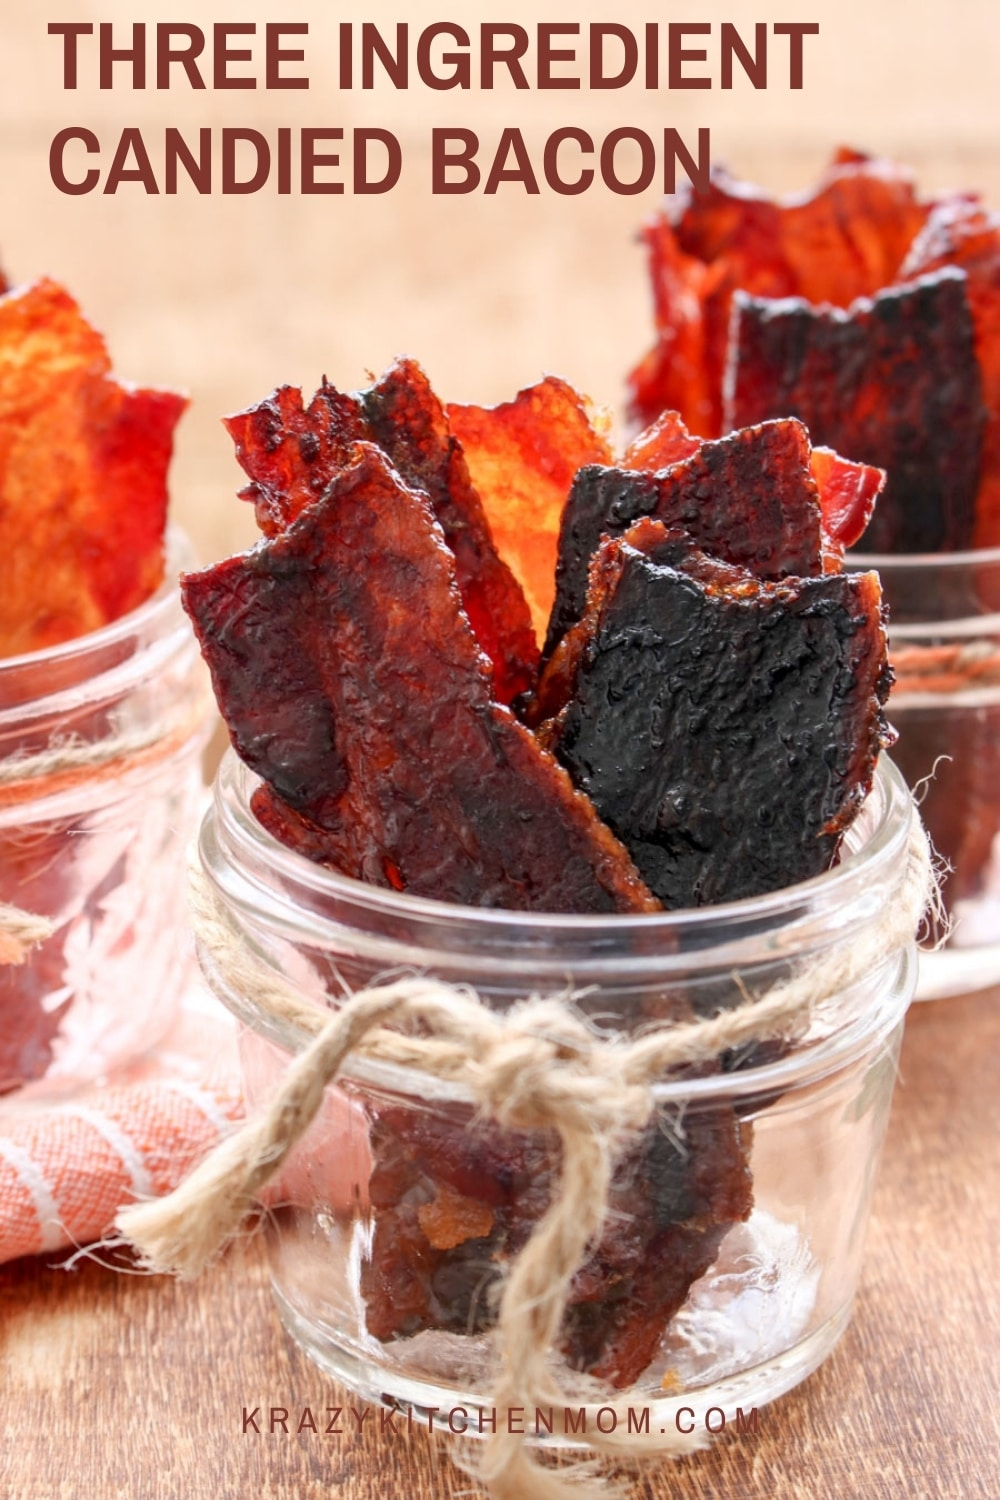 Crispy, crunchy, sweet, salty pieces of candied bacon are irresistible.  via @krazykitchenmom